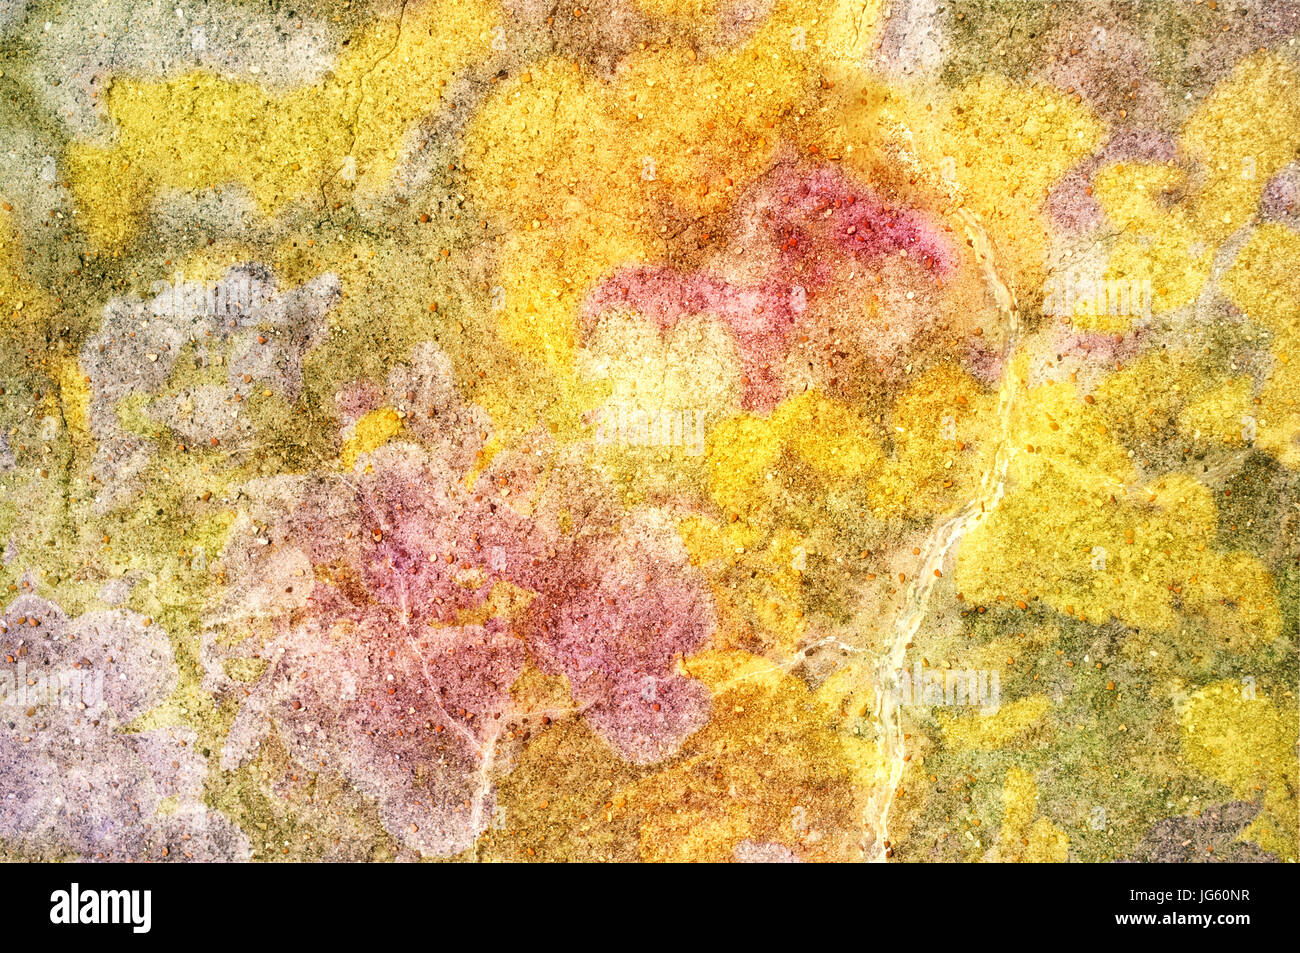 Abstract background texture of a piece of stone, scattered with smaller stones and overlaid with bright yellow, - Stock Image